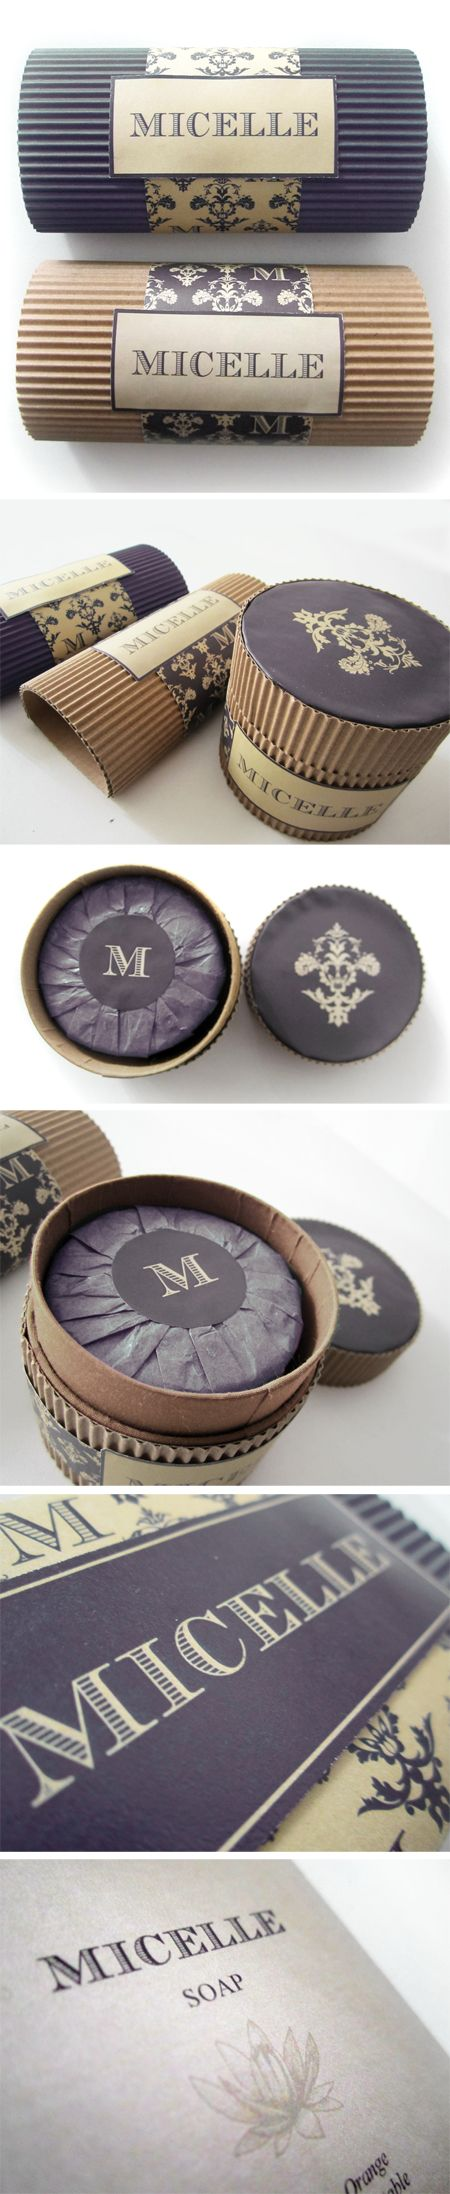 Micelle Soap by Maurizio Pagnozzi #packaging #design